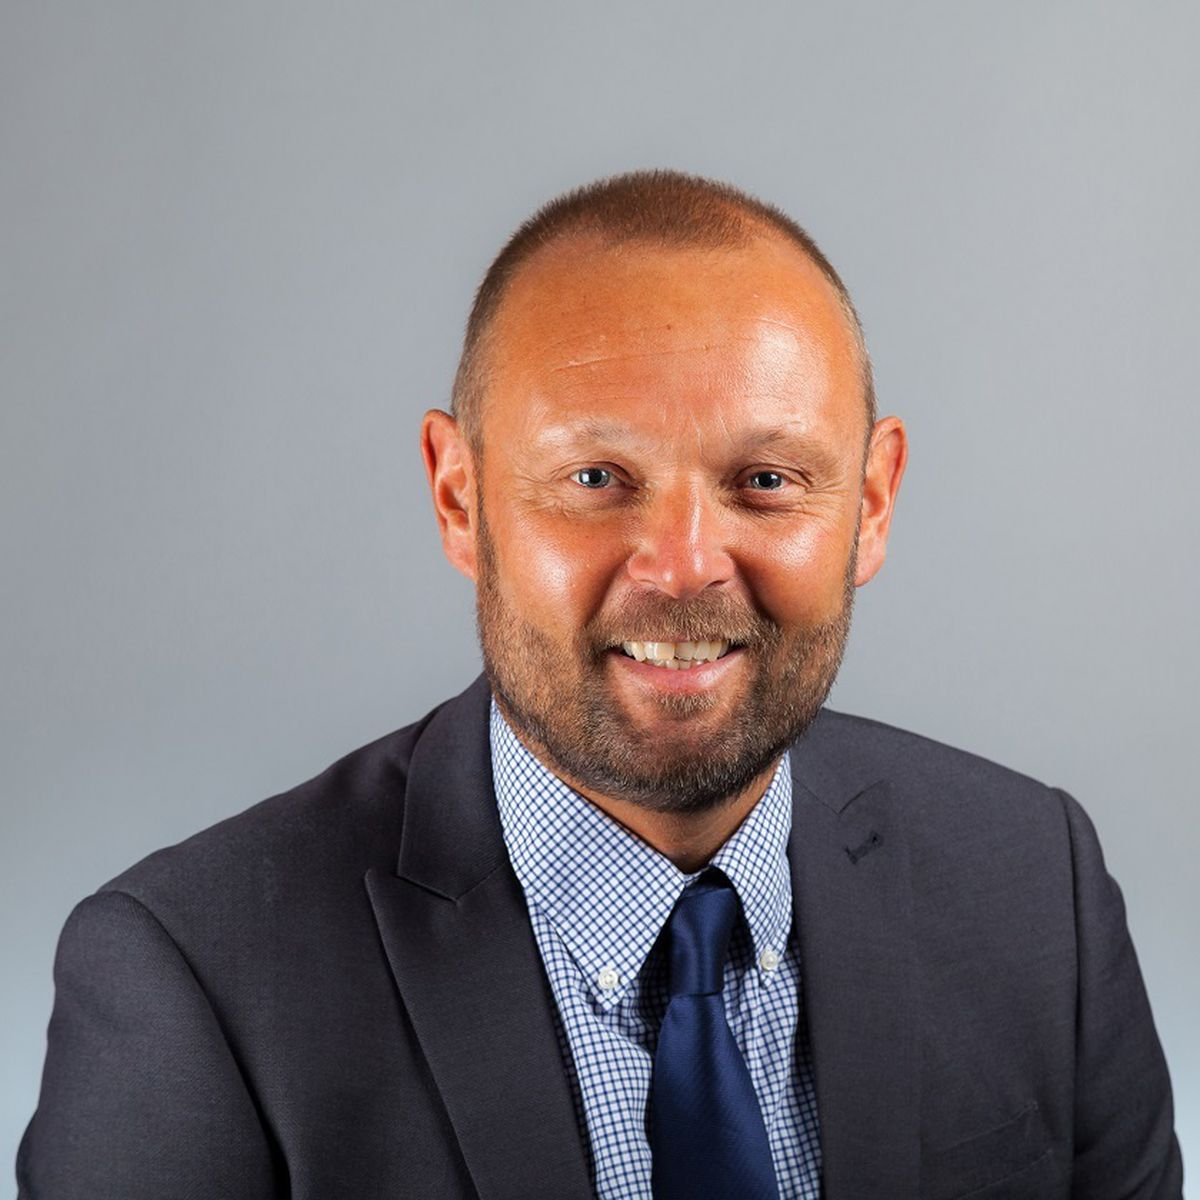 Dave Williams, from Henshalls Insurance Brokers